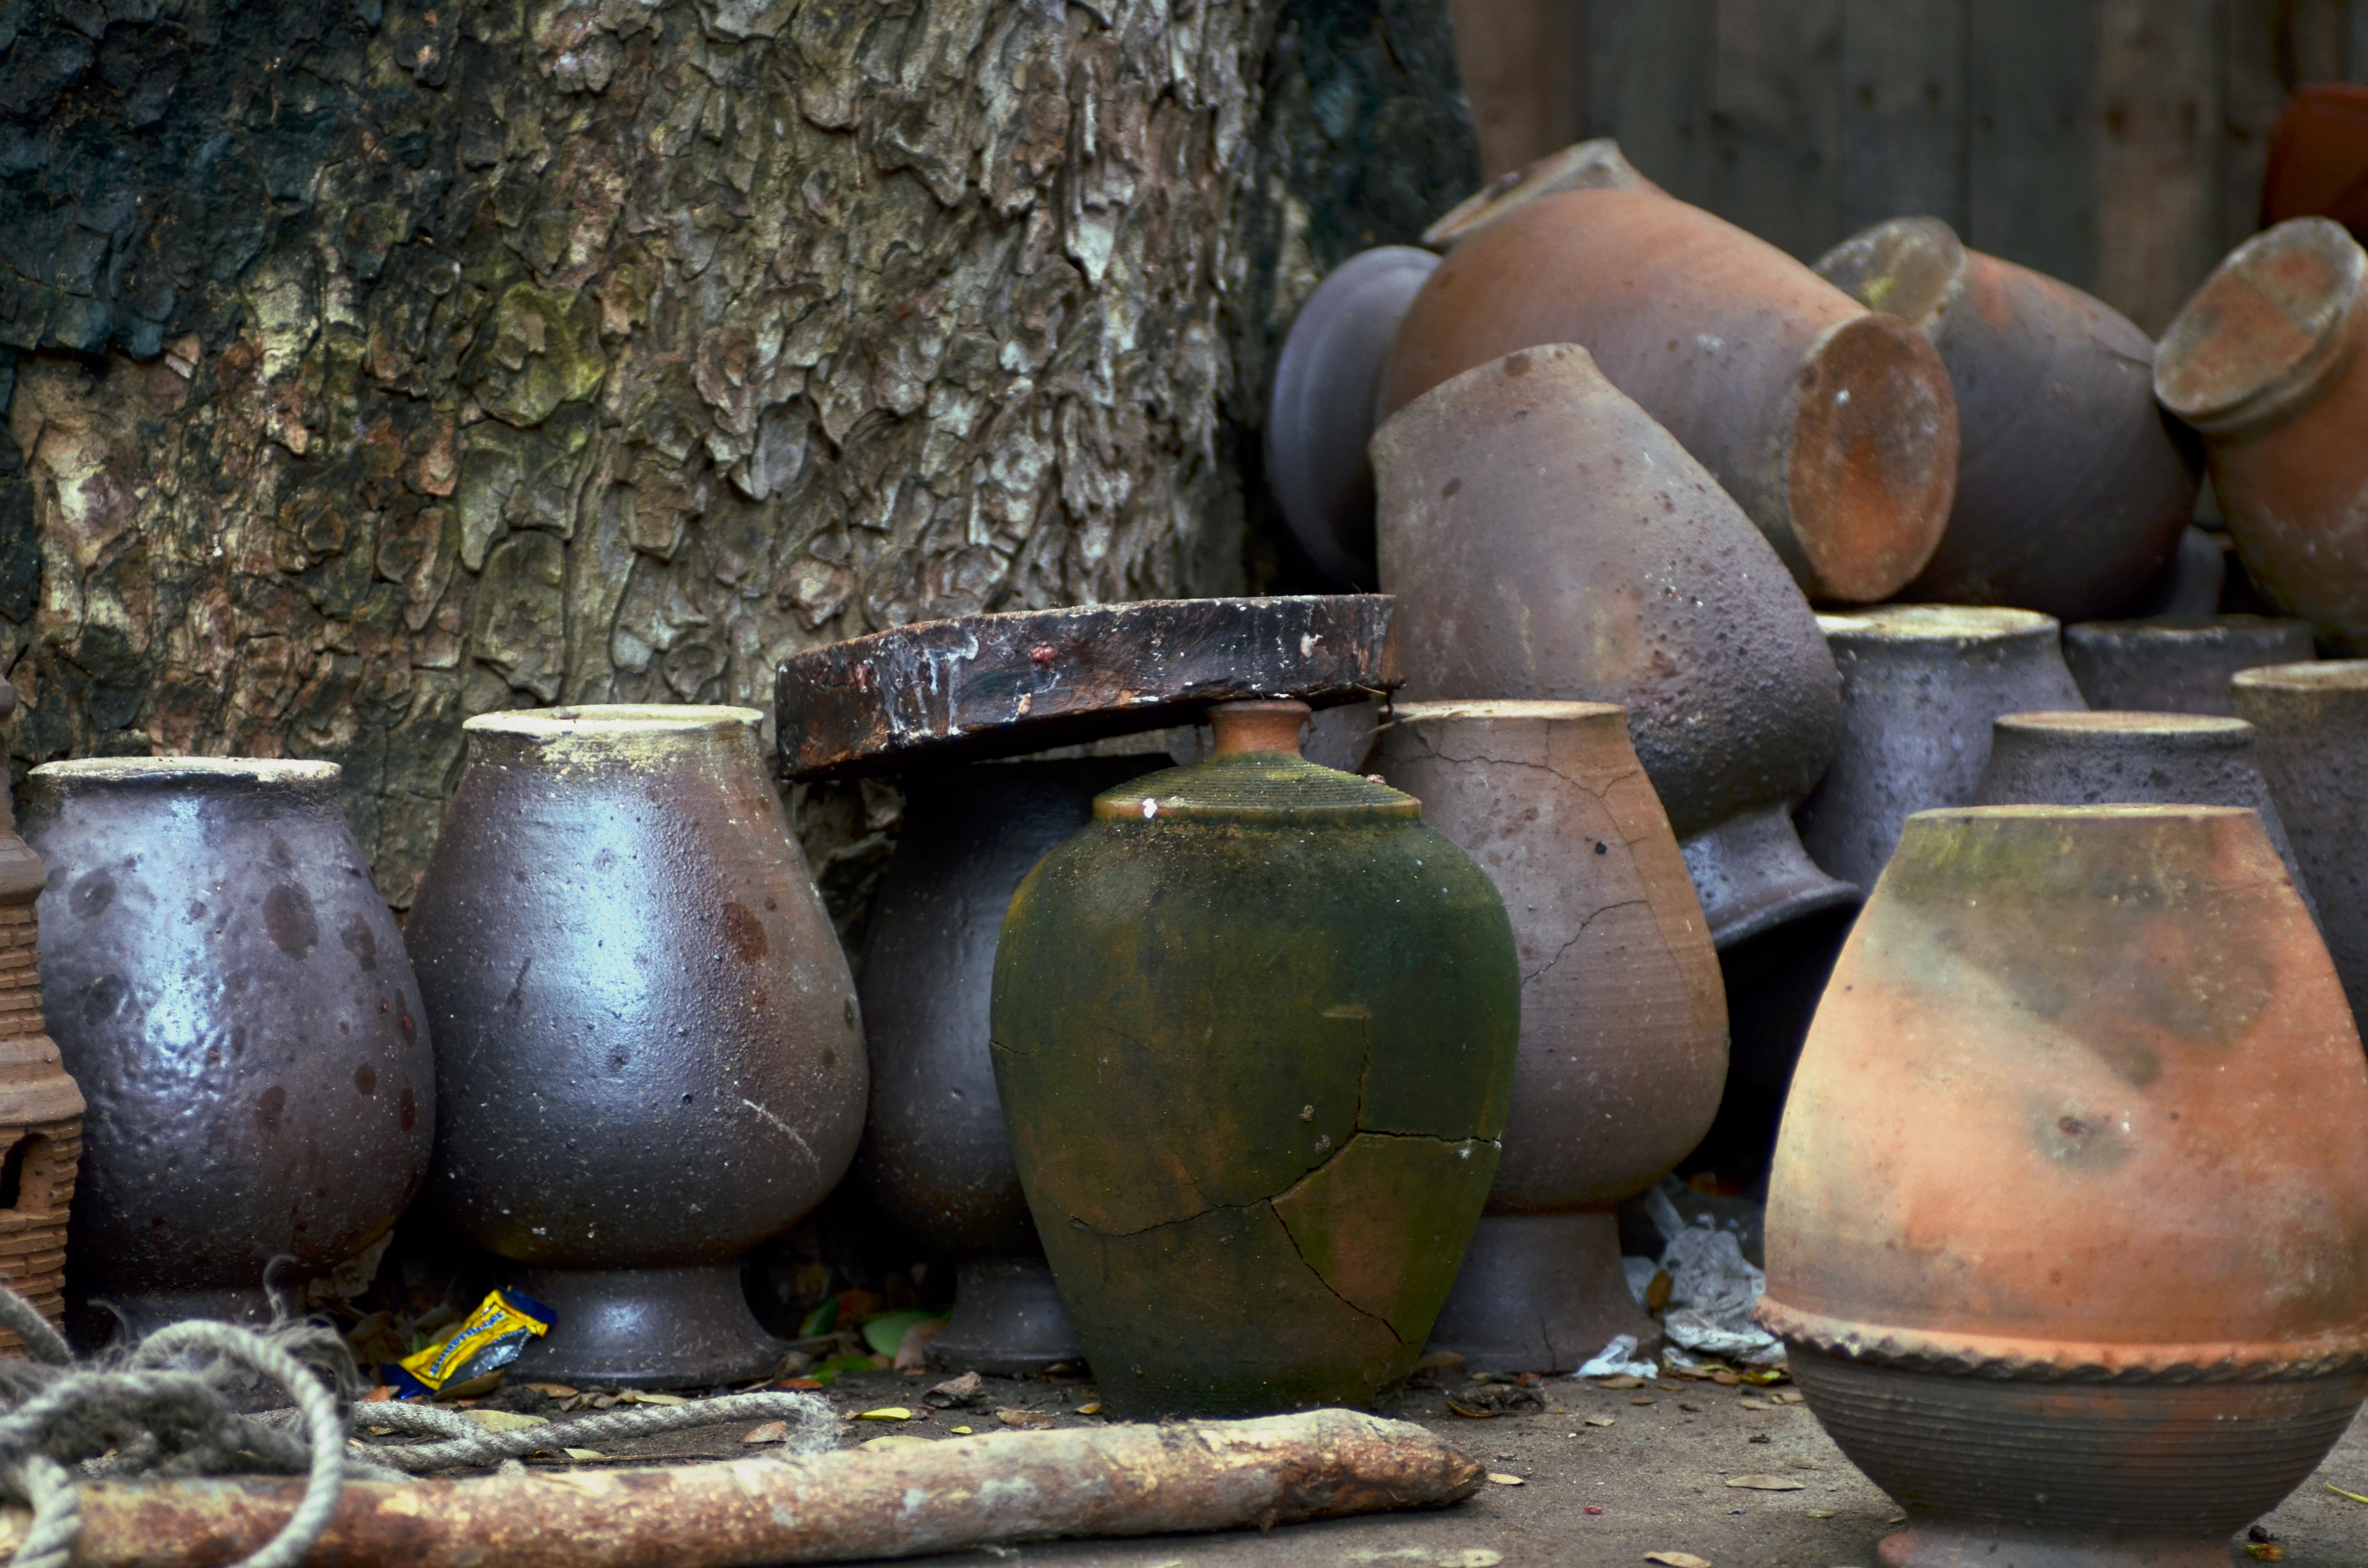 Ancient stone water jars clipart image freeuse download Philippine ceramics - Wikipedia image freeuse download